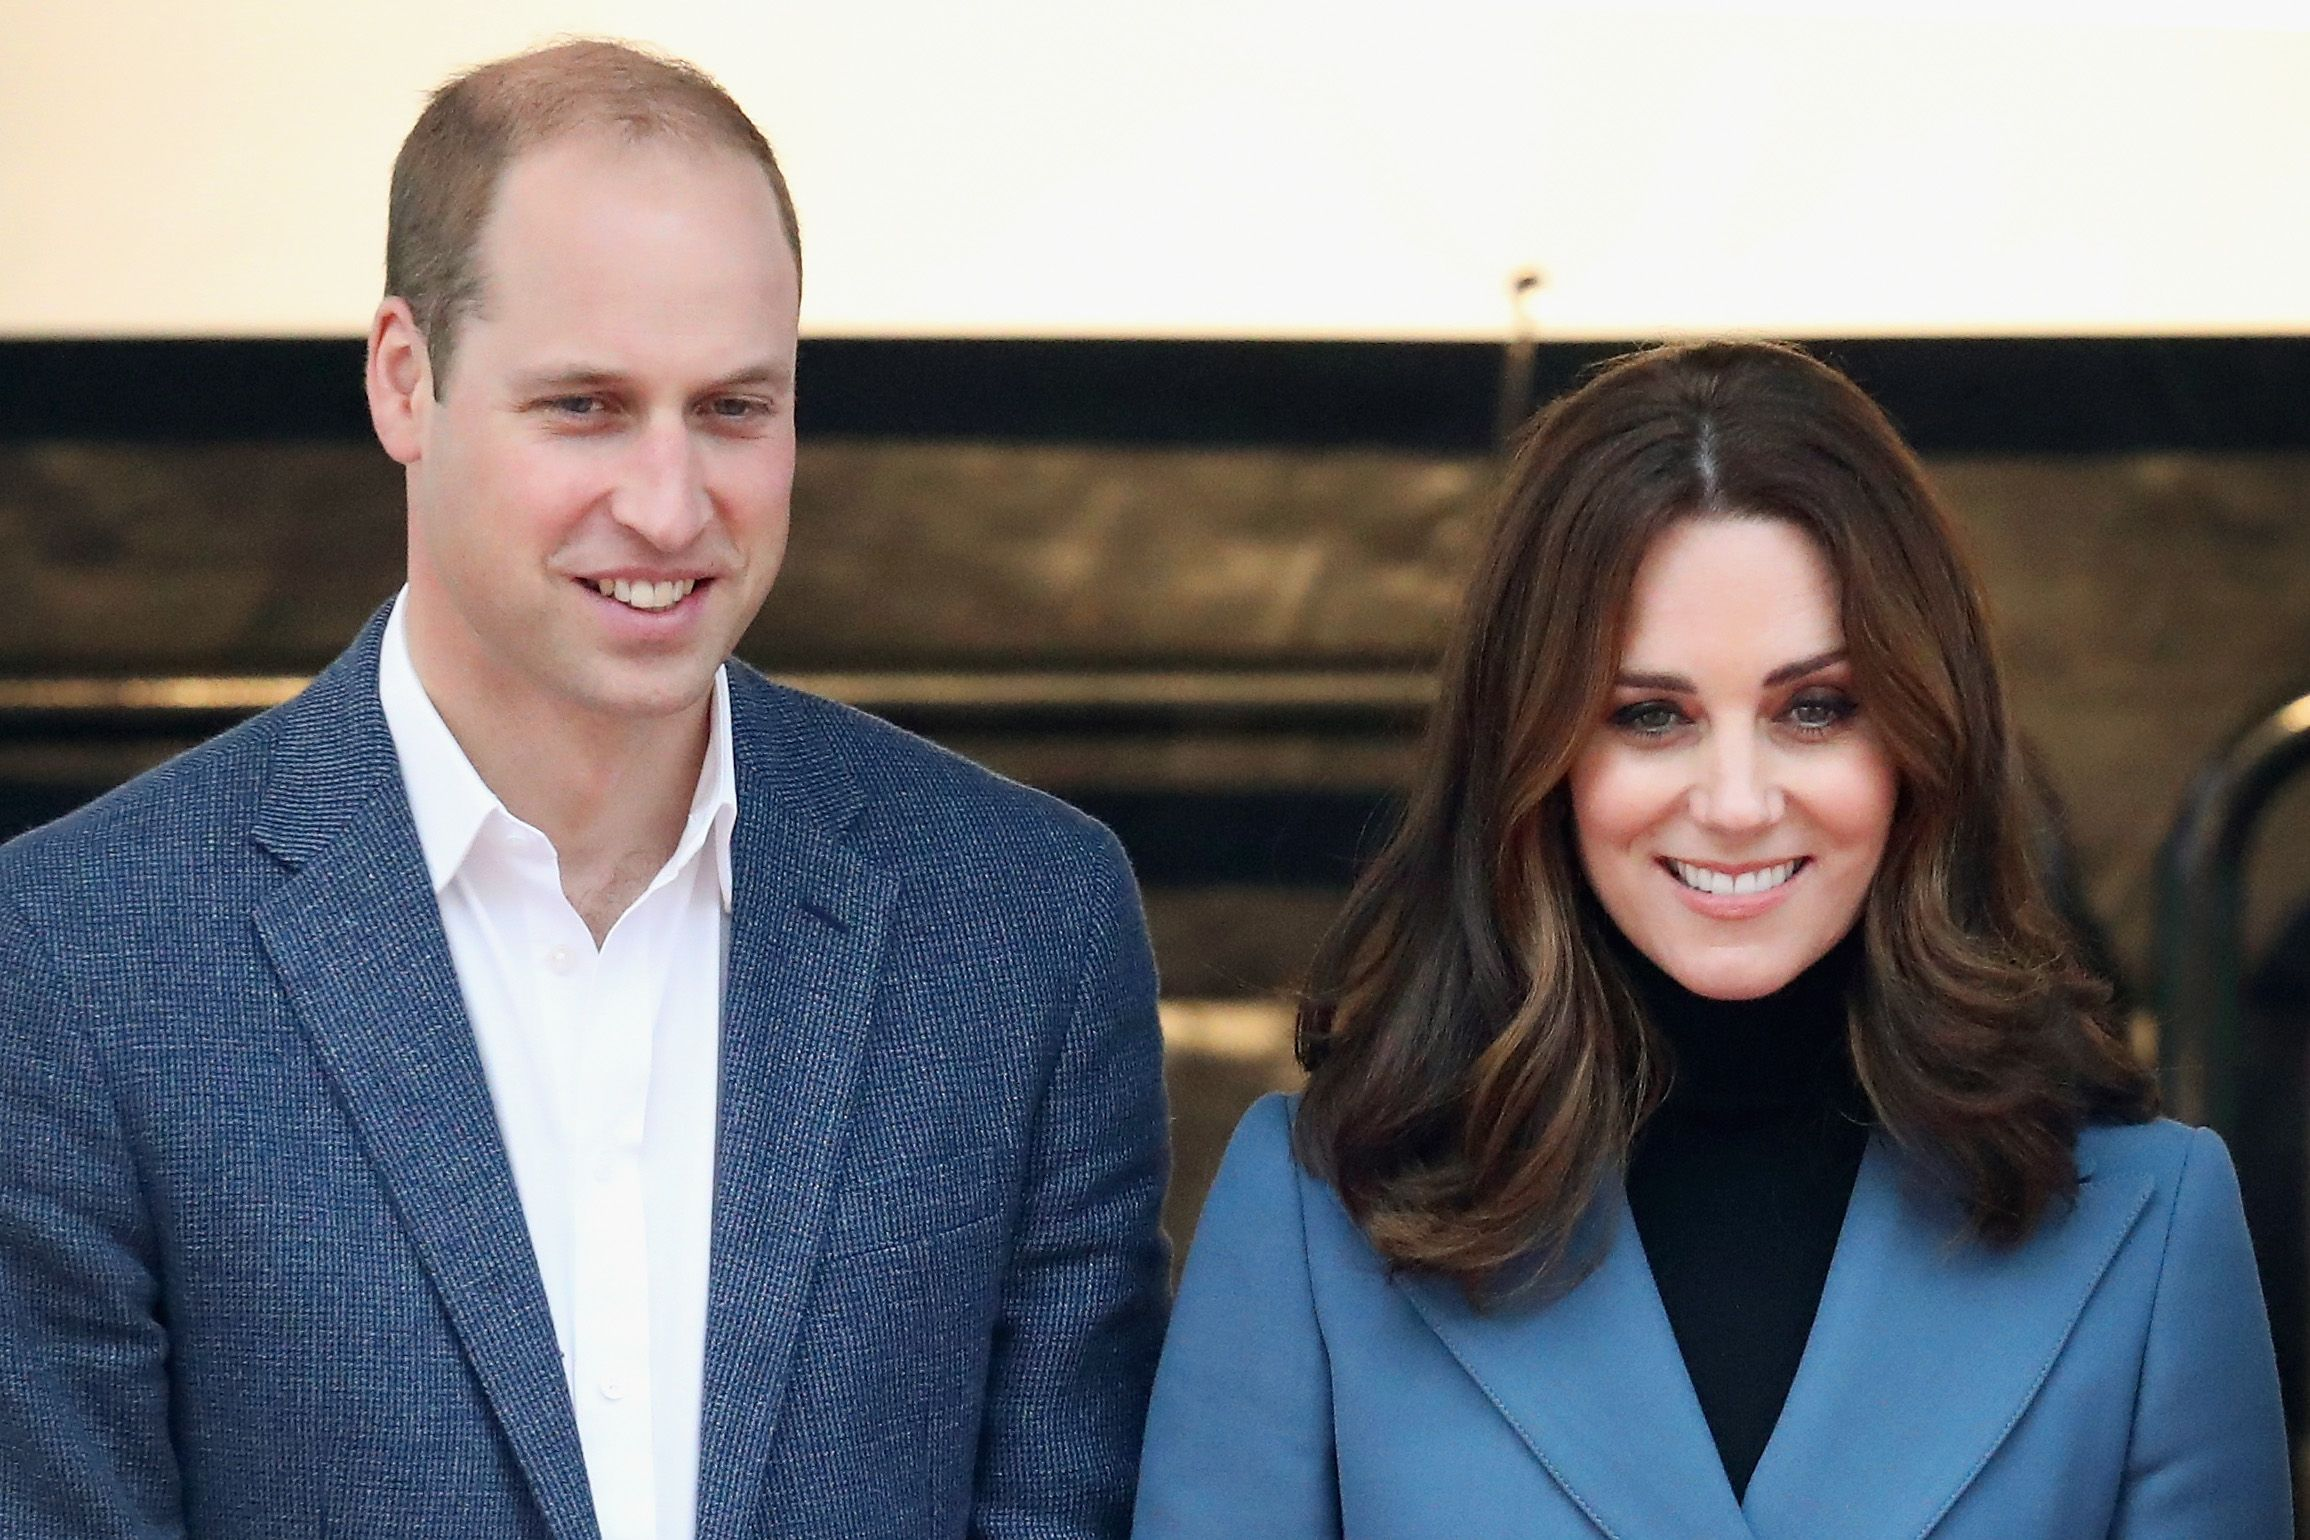 Le prince William, duc de Cambridge et Catherine, duchesse de Cambridge assistent à la cérémonie de remise des diplômes Coach Core pour plus de 150 apprentis Coach Core au London Stadium le 18 octobre 2017 à Londres, en Angleterre. | Photo : Getty Images